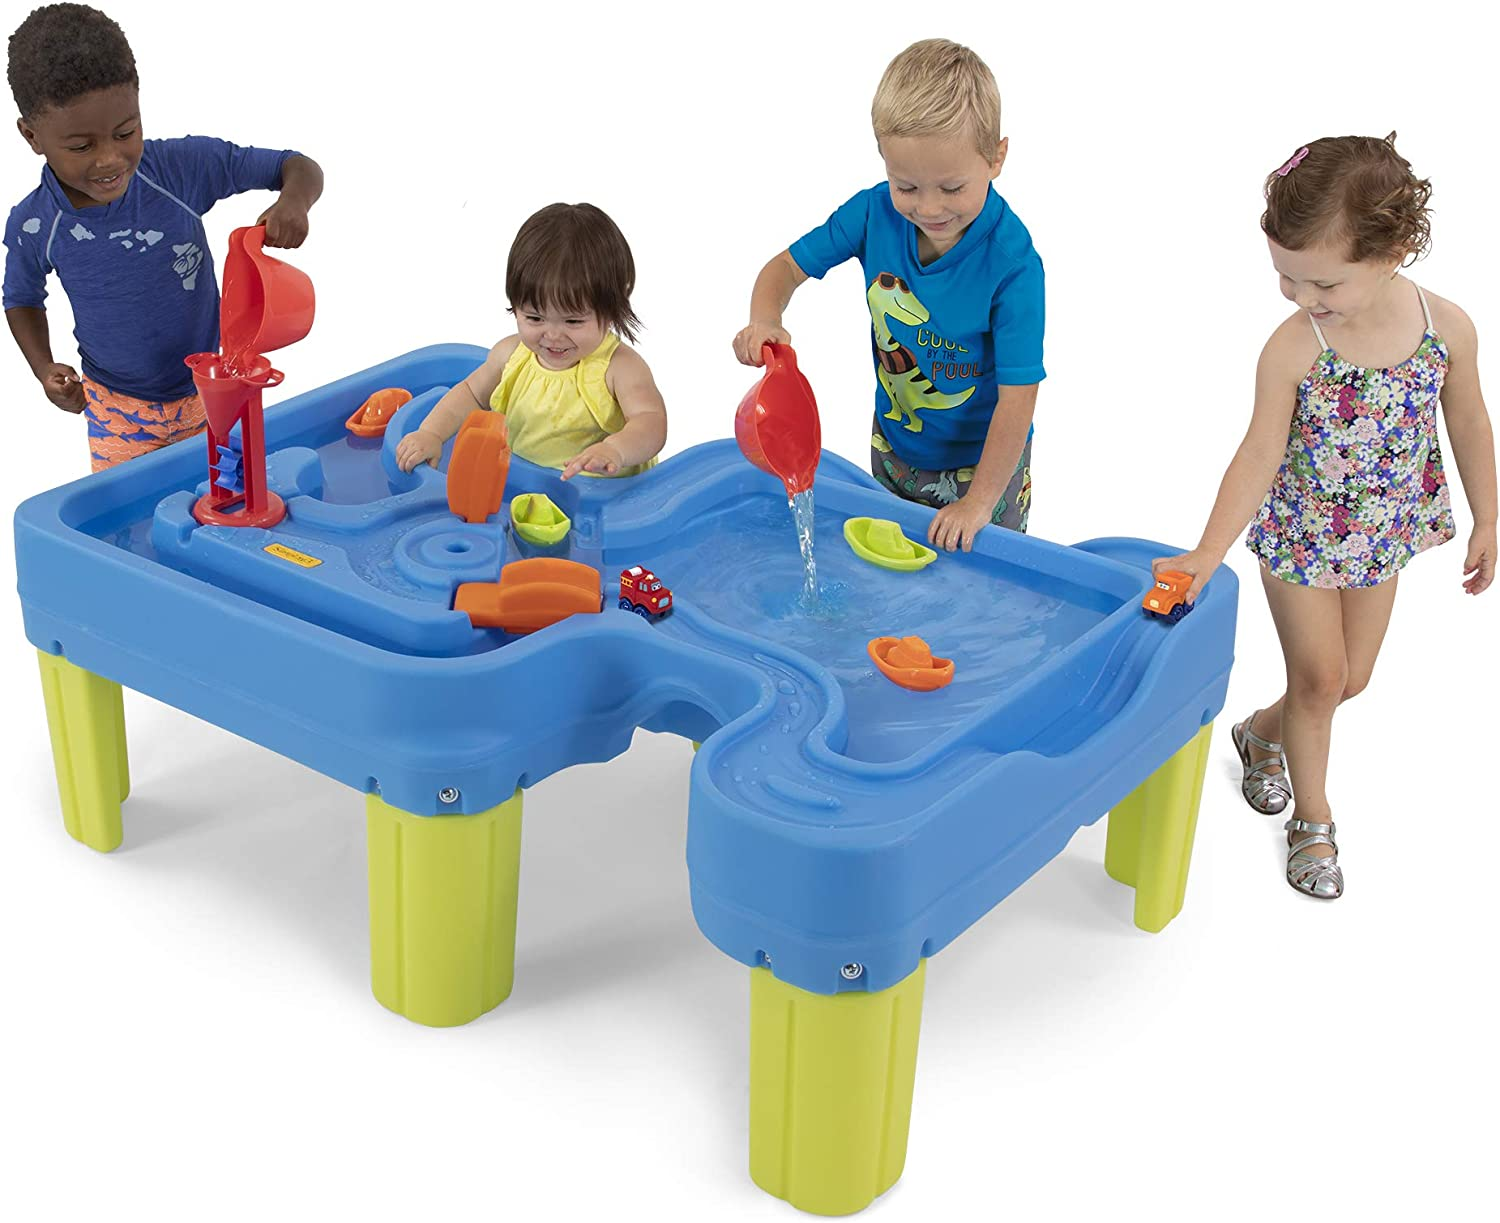 "Simplay3 Big River and Roads Outdoor Water Activity Play Table with Water and Track Toys for Toddlers and Kids, Accessories Included - 44.5"" L x 29"" W x 14"" H"